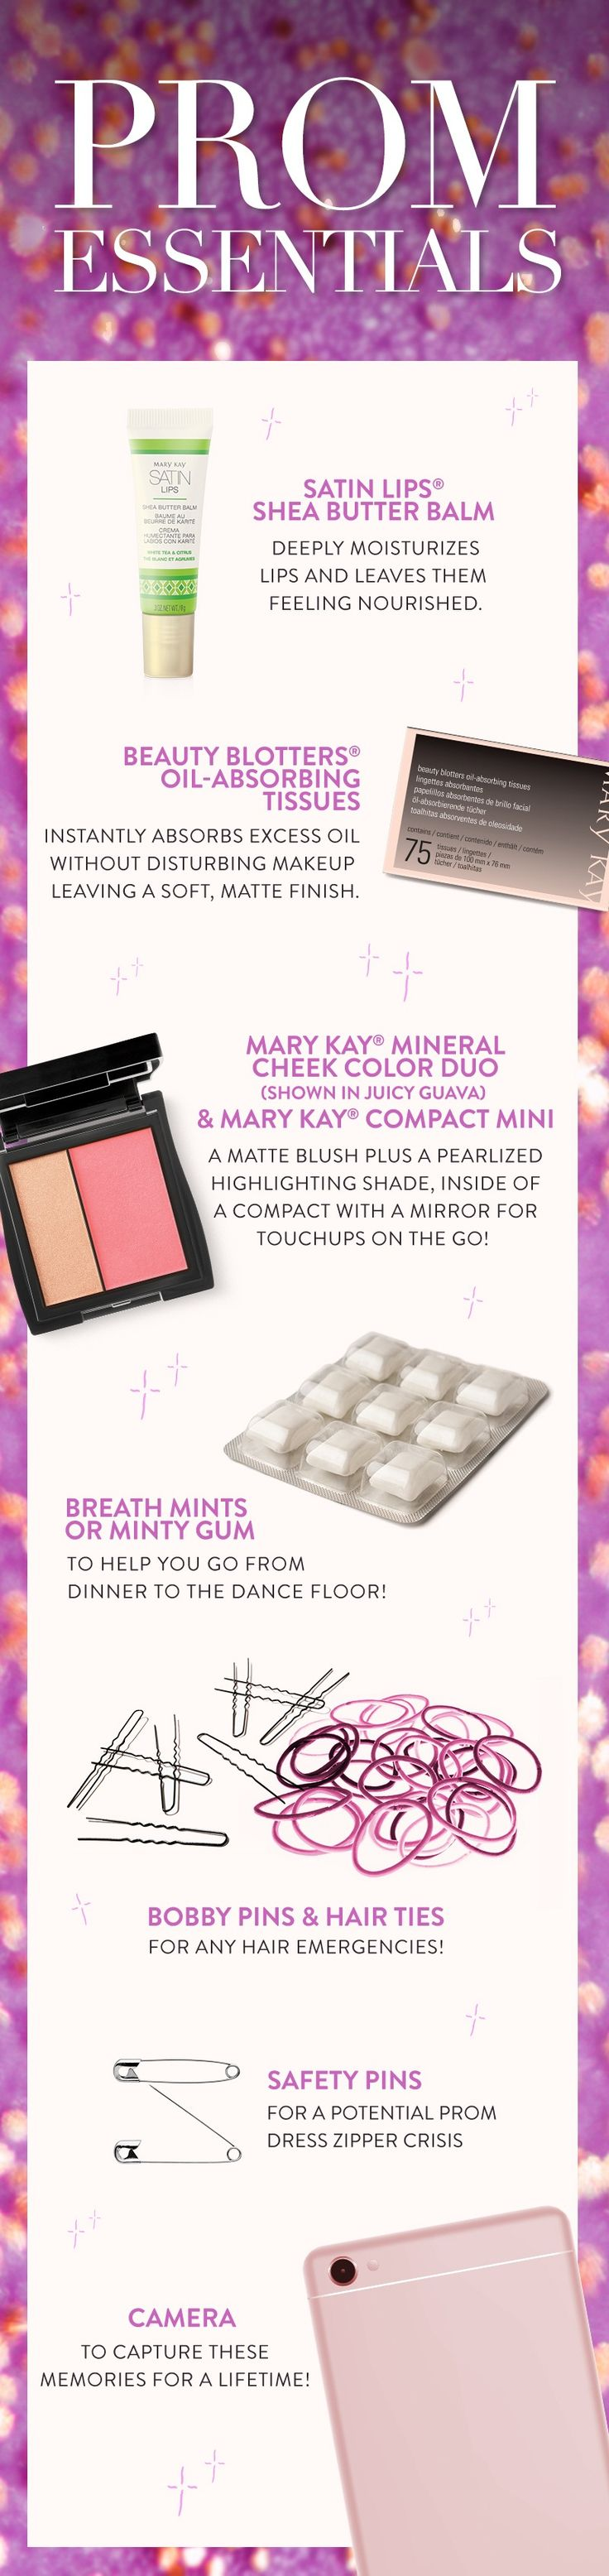 A few prom night beauty must-haves for your clutch: lip balm, oil-absorbing tissues, and a compact with a mirror. Be extra prepared with some minty gum and backup hair and wardrobe accessories! | Mary Kay